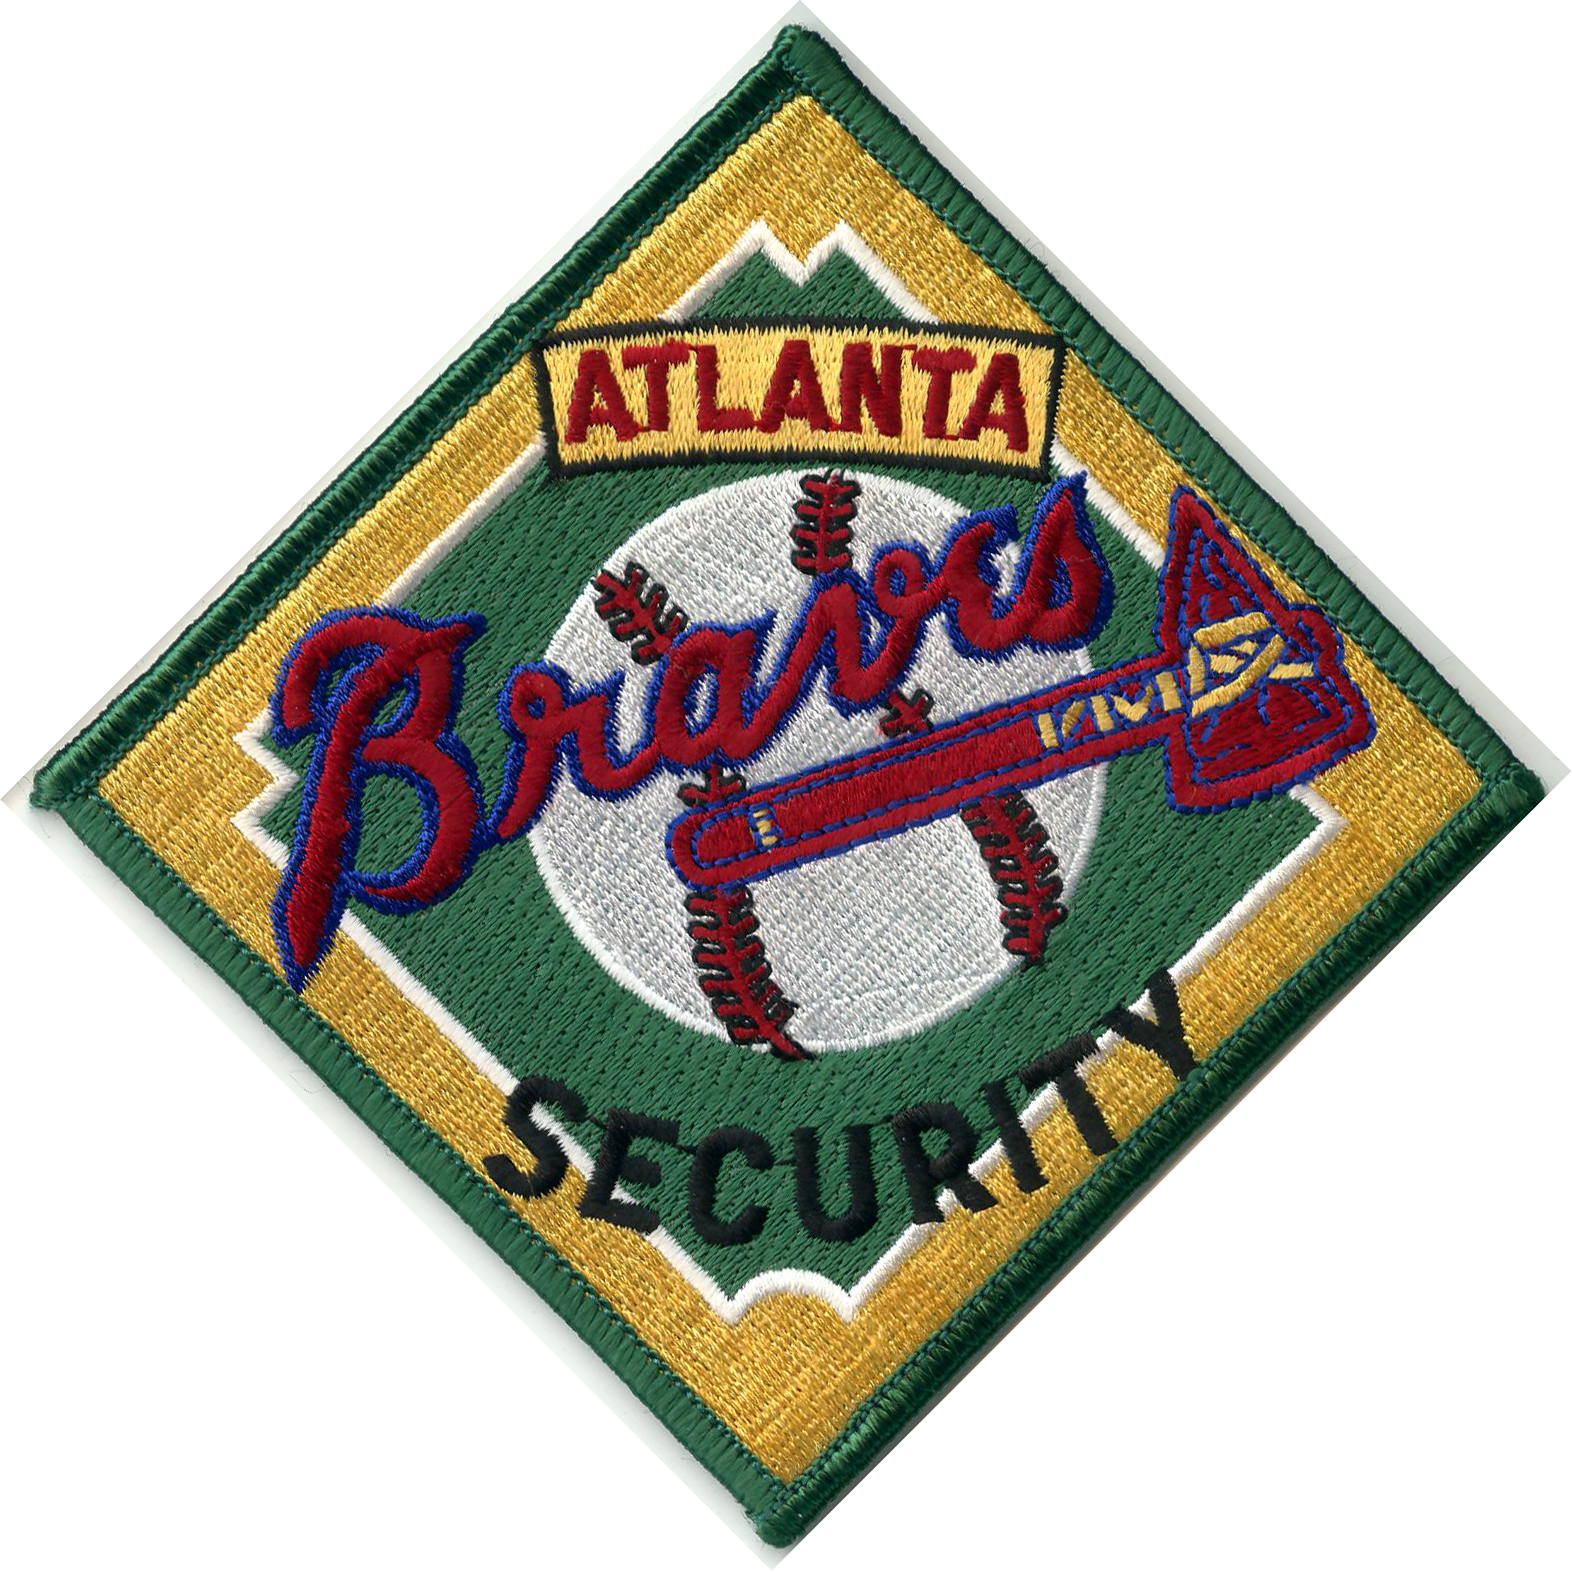 Atlanta braves security embroidered patch